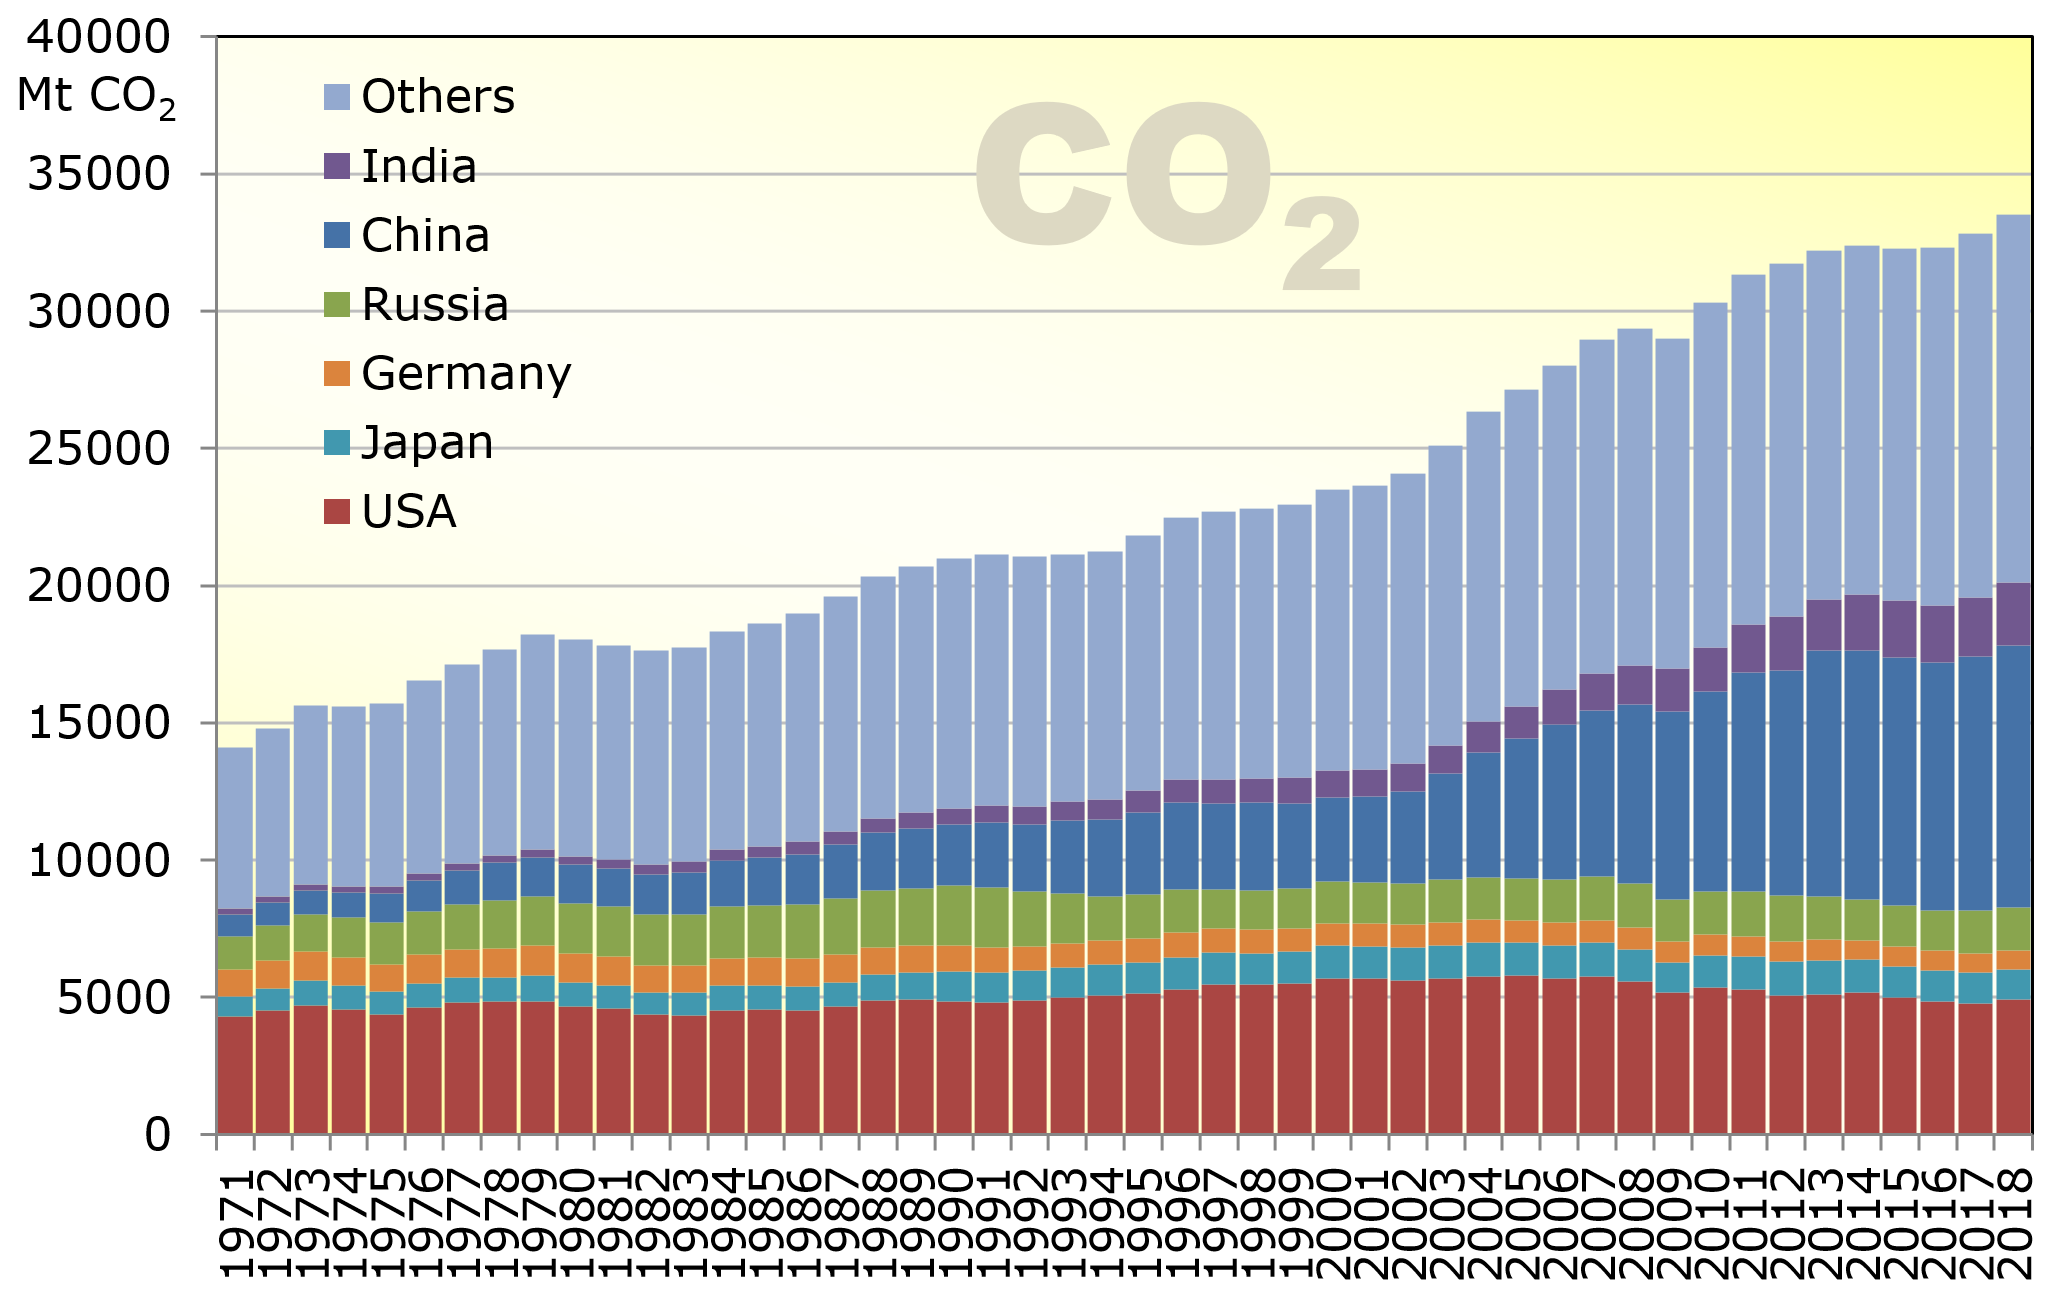 Development of CO2 emissions from different countries